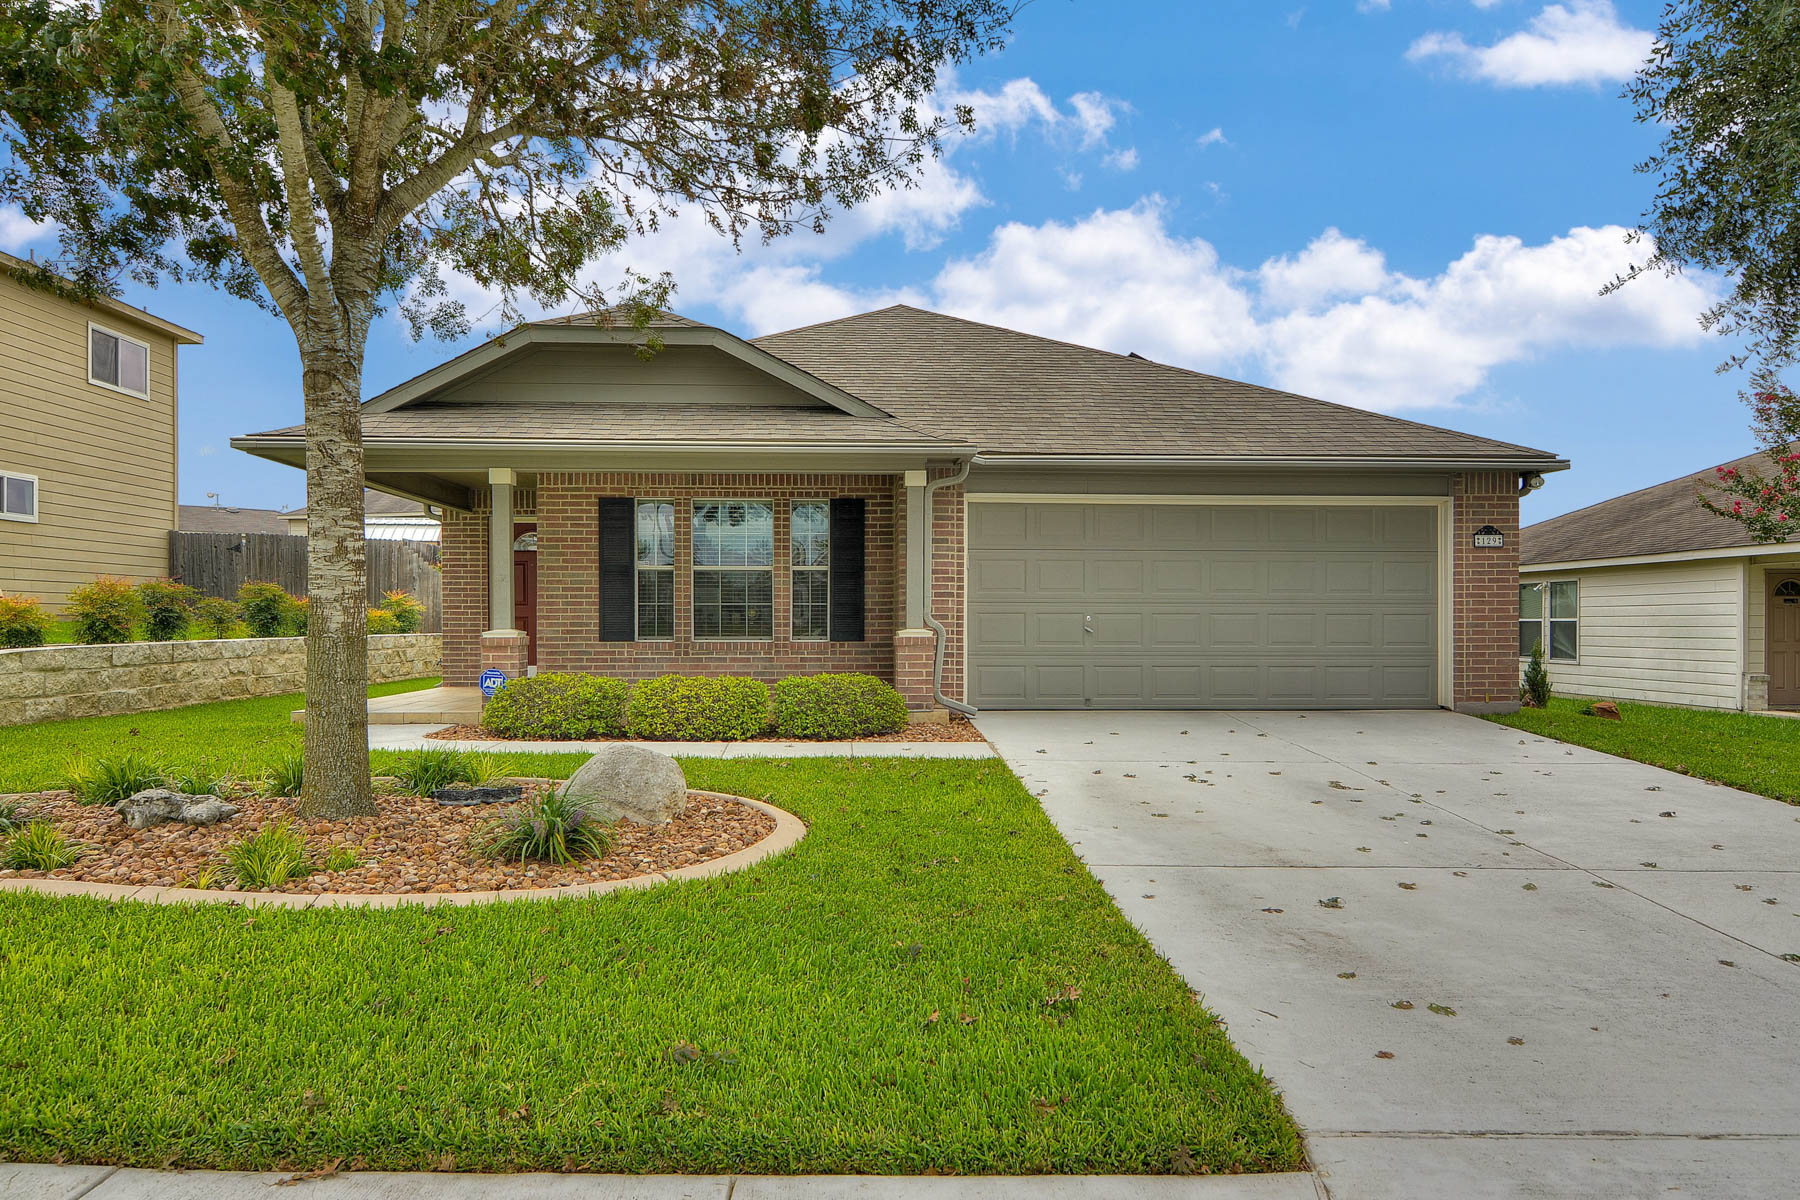 Single Family Home for Sale at Gorgeous Single Story in Willow Bridge 129 S. Willow Way Cibolo, Texas 78108 United States